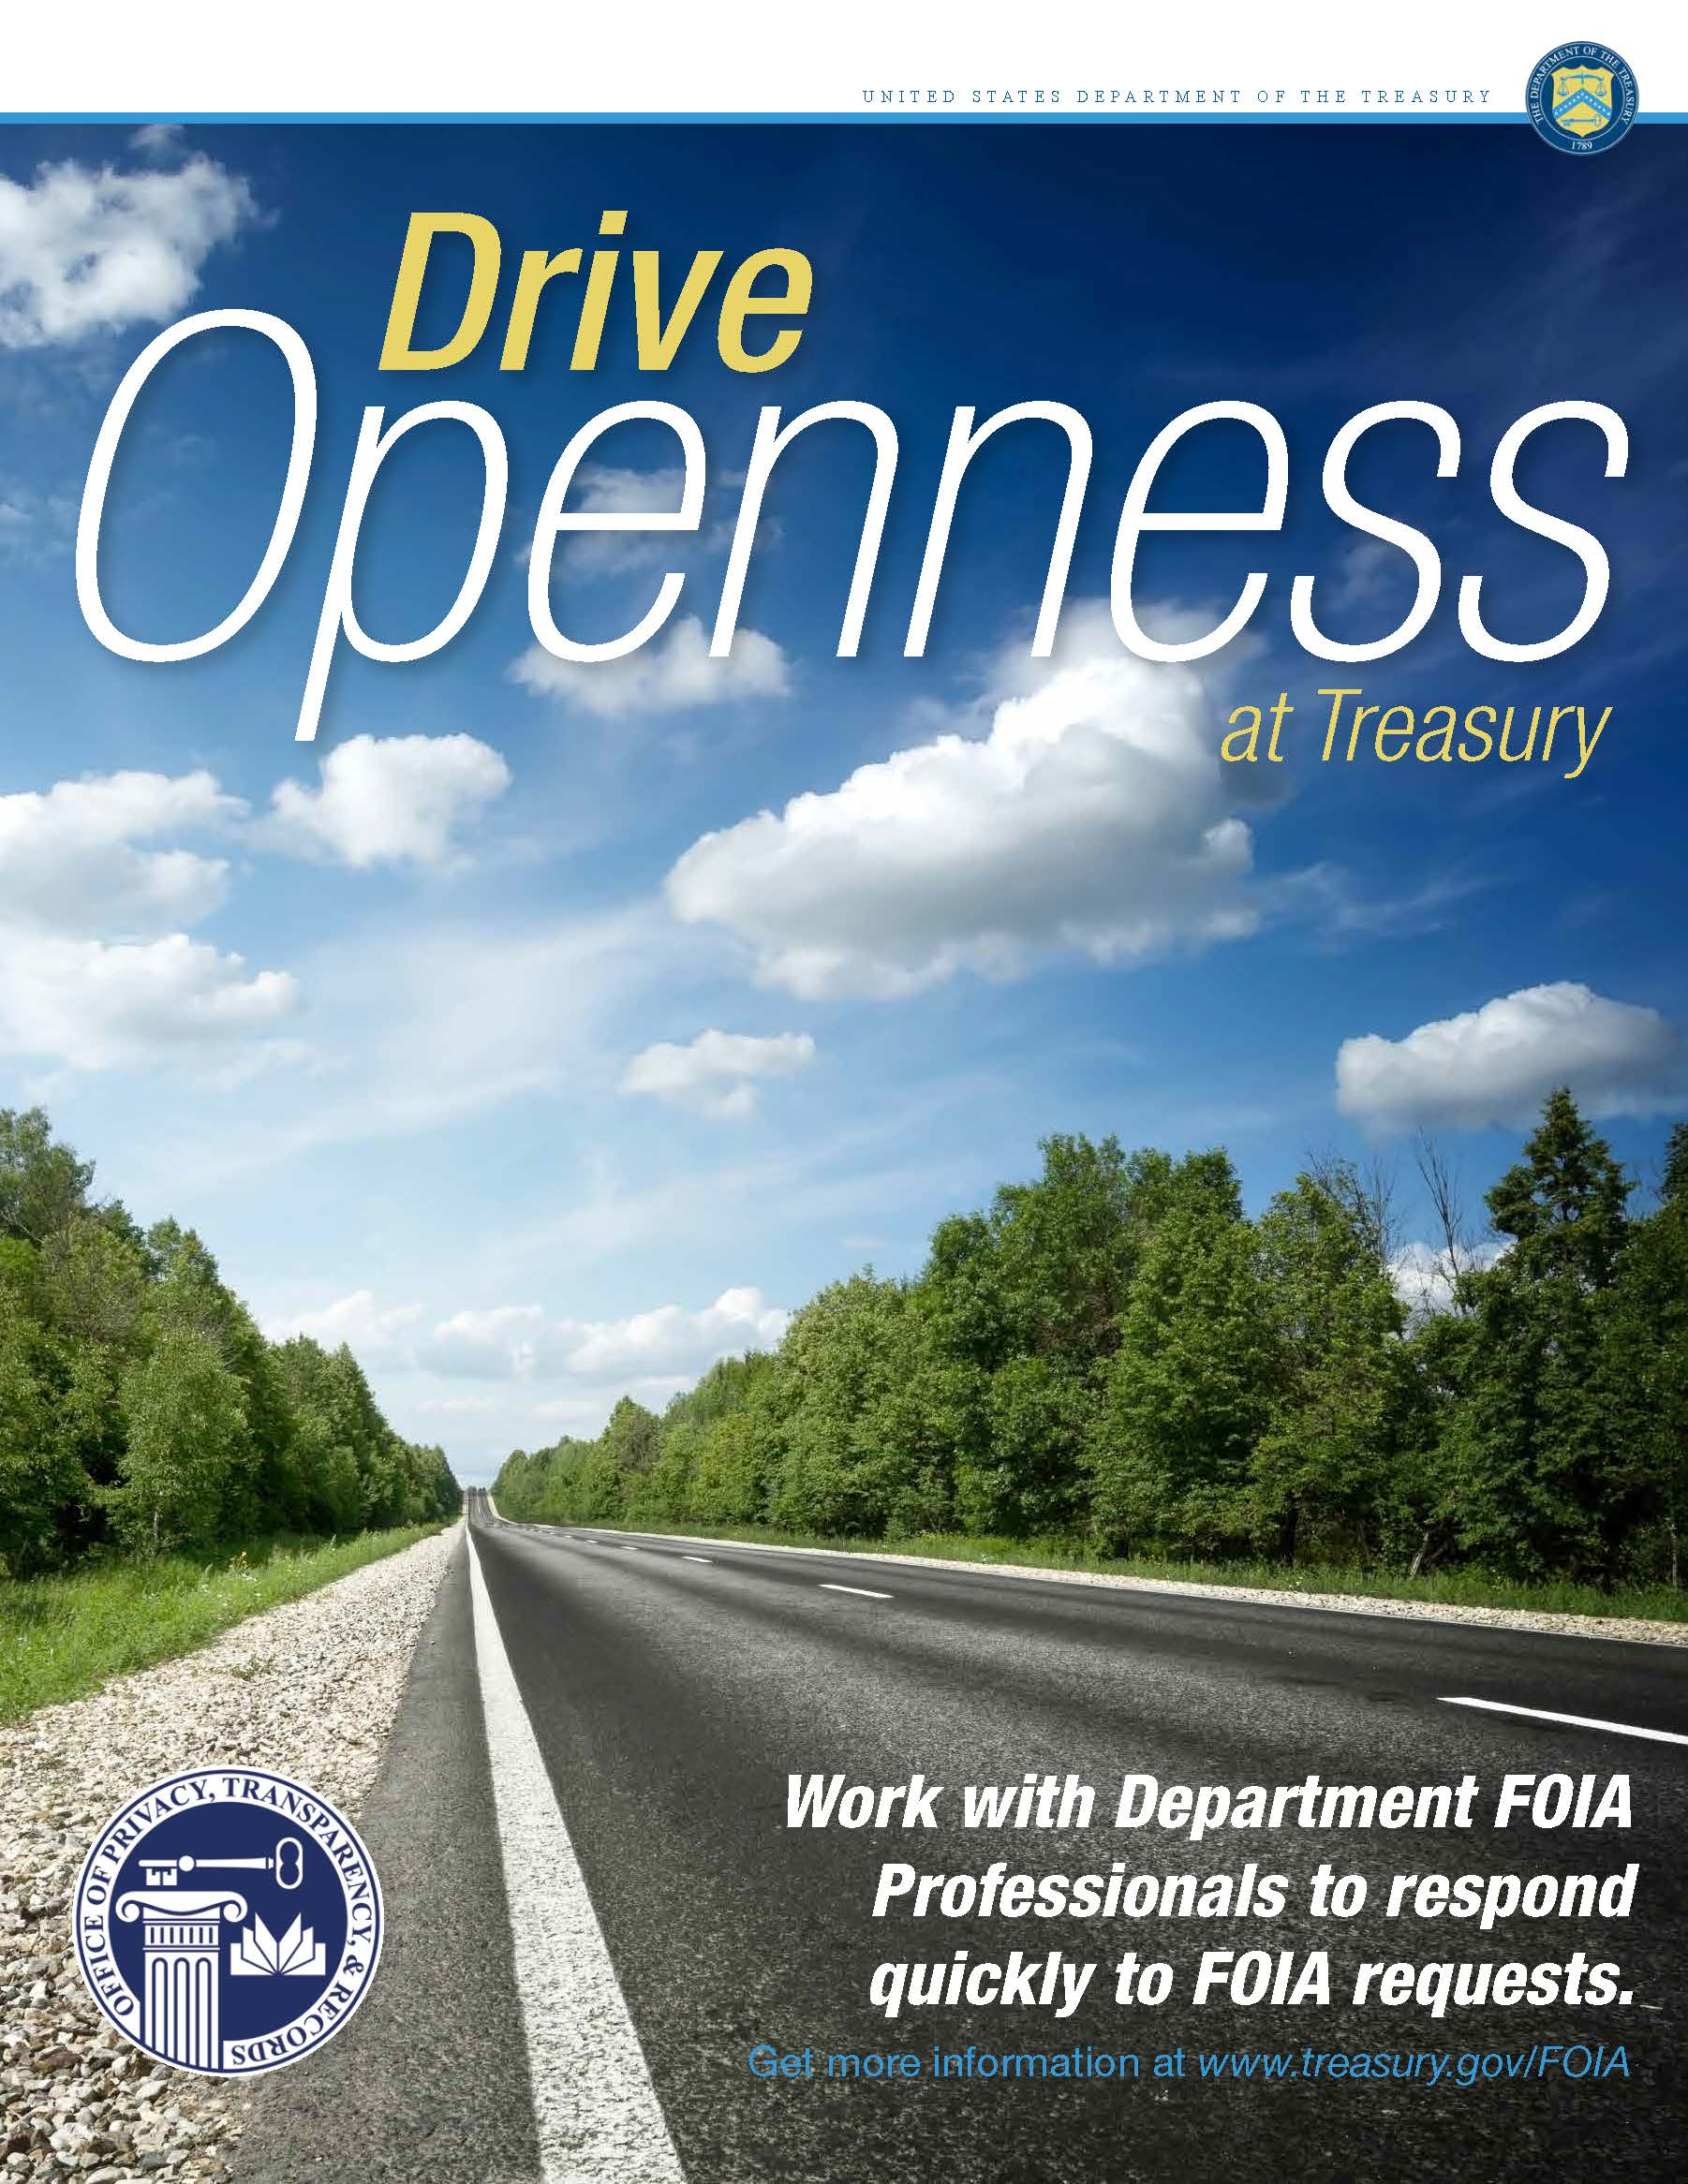 Treasury introduced an inspiring new internal marketing campaign for its FOIA program during Sunshine Week. We love it!